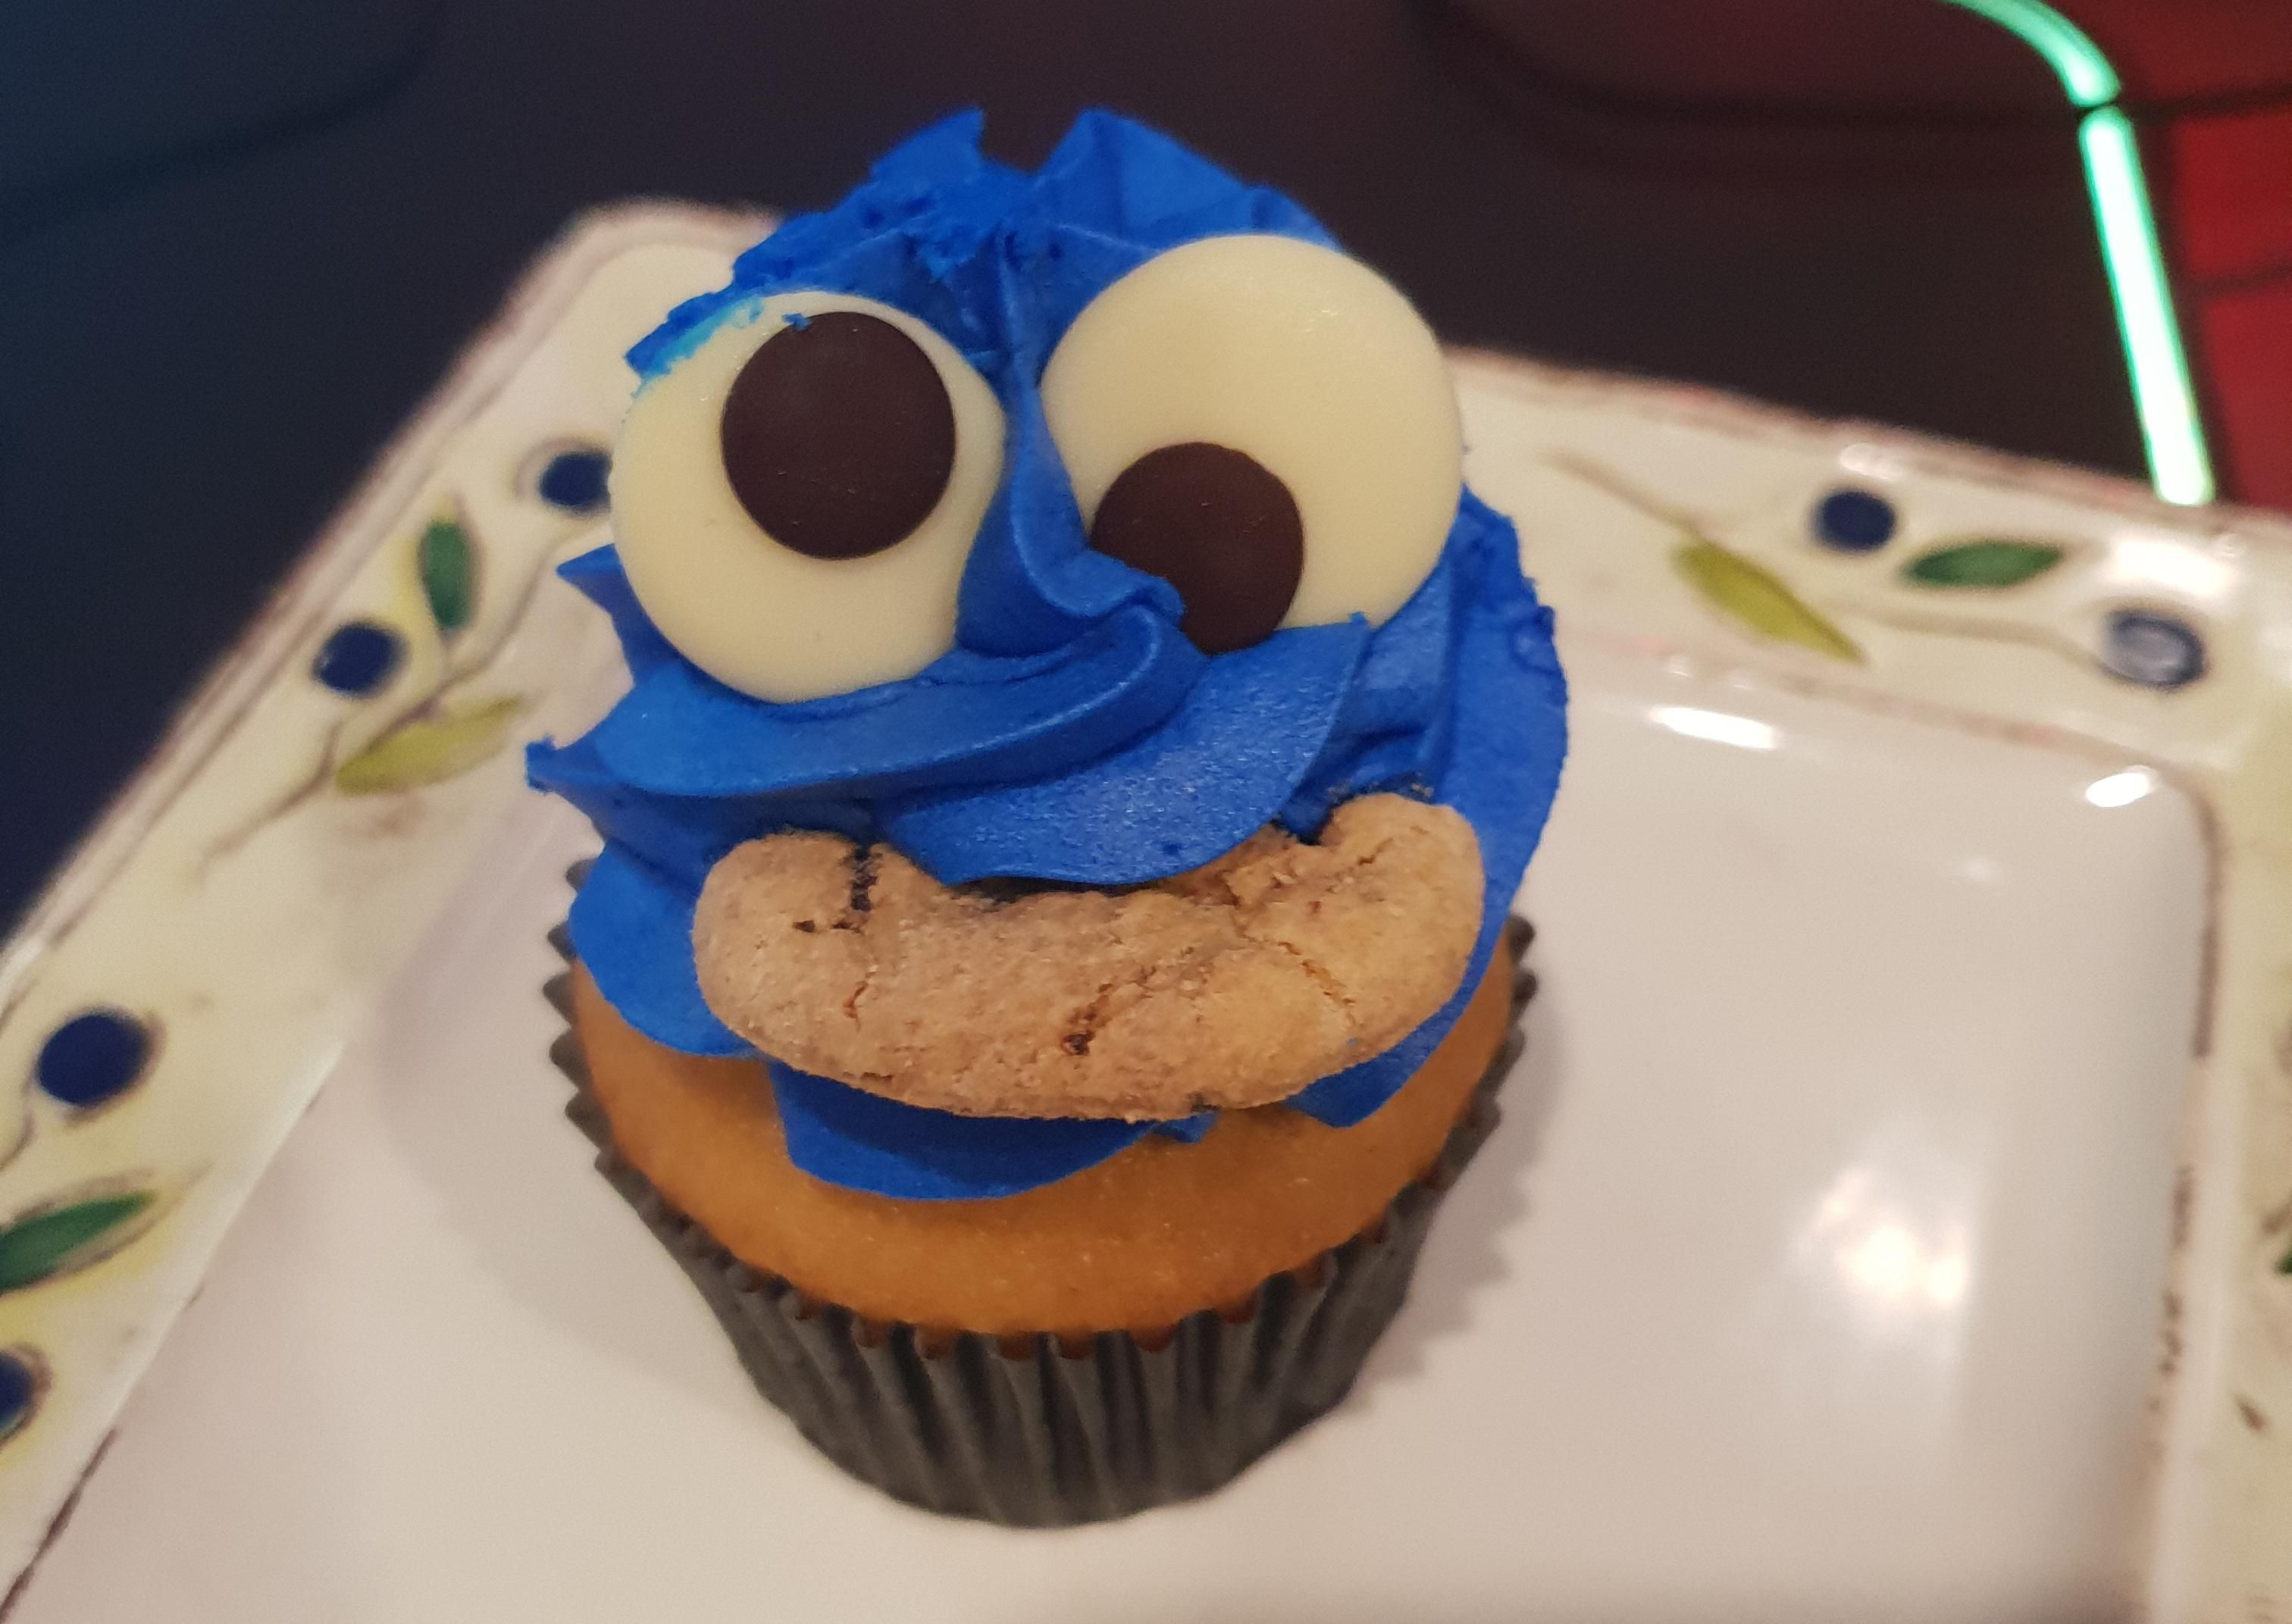 [I Ate] Cookie Monster Cupcake